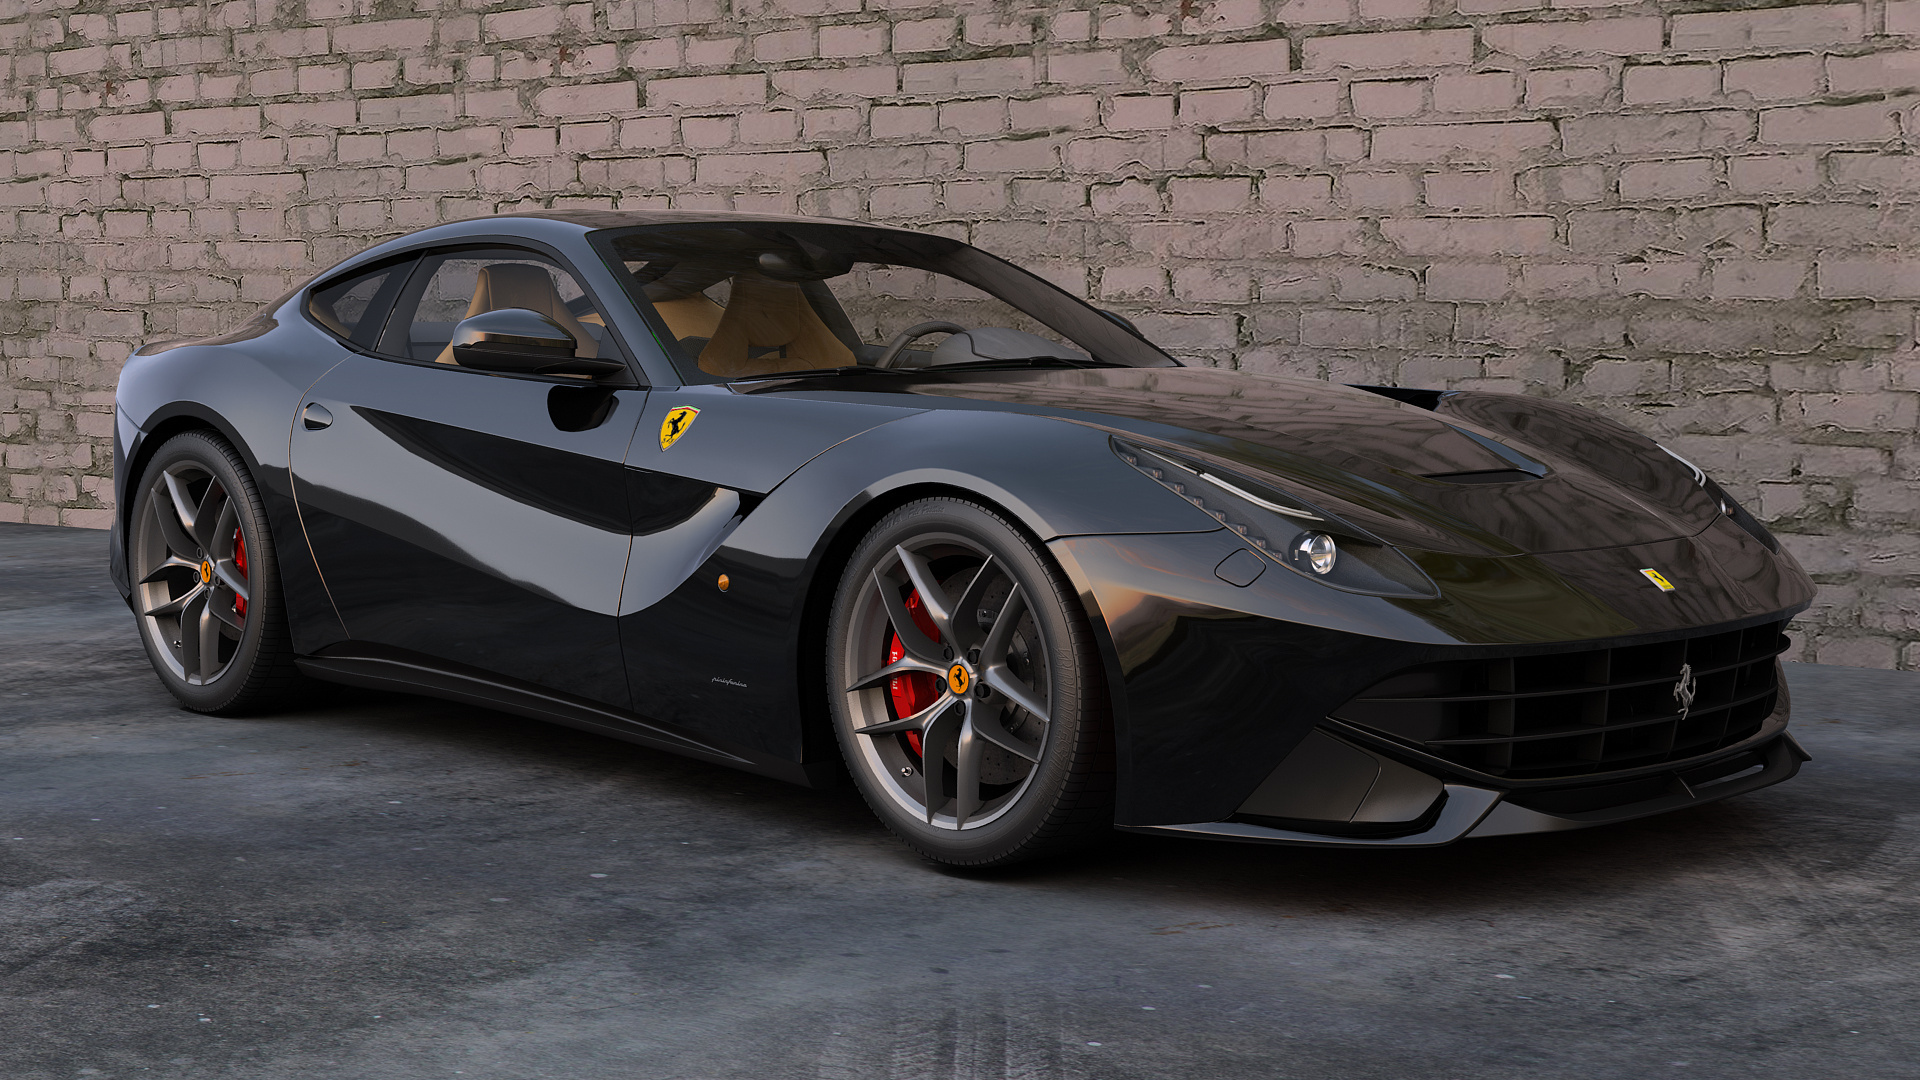 103 Ferrari F12berlinetta Hd Wallpapers Background